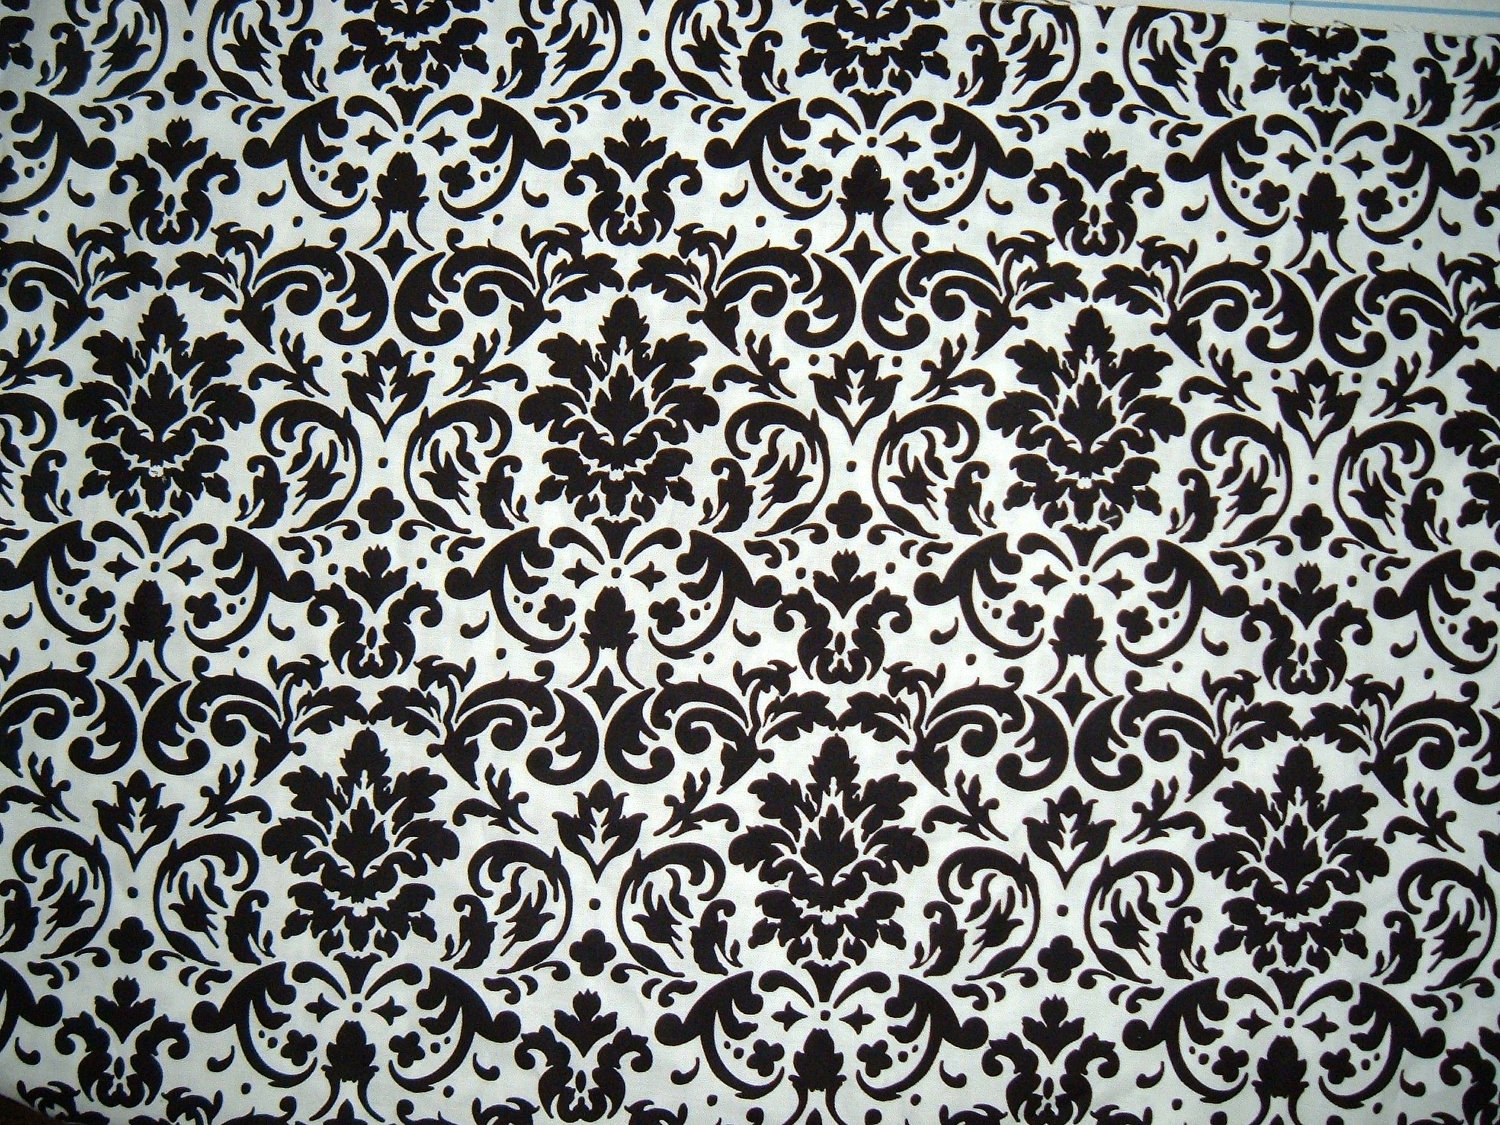 Black and white damask wallpaper 23 background for Damask wallpaper